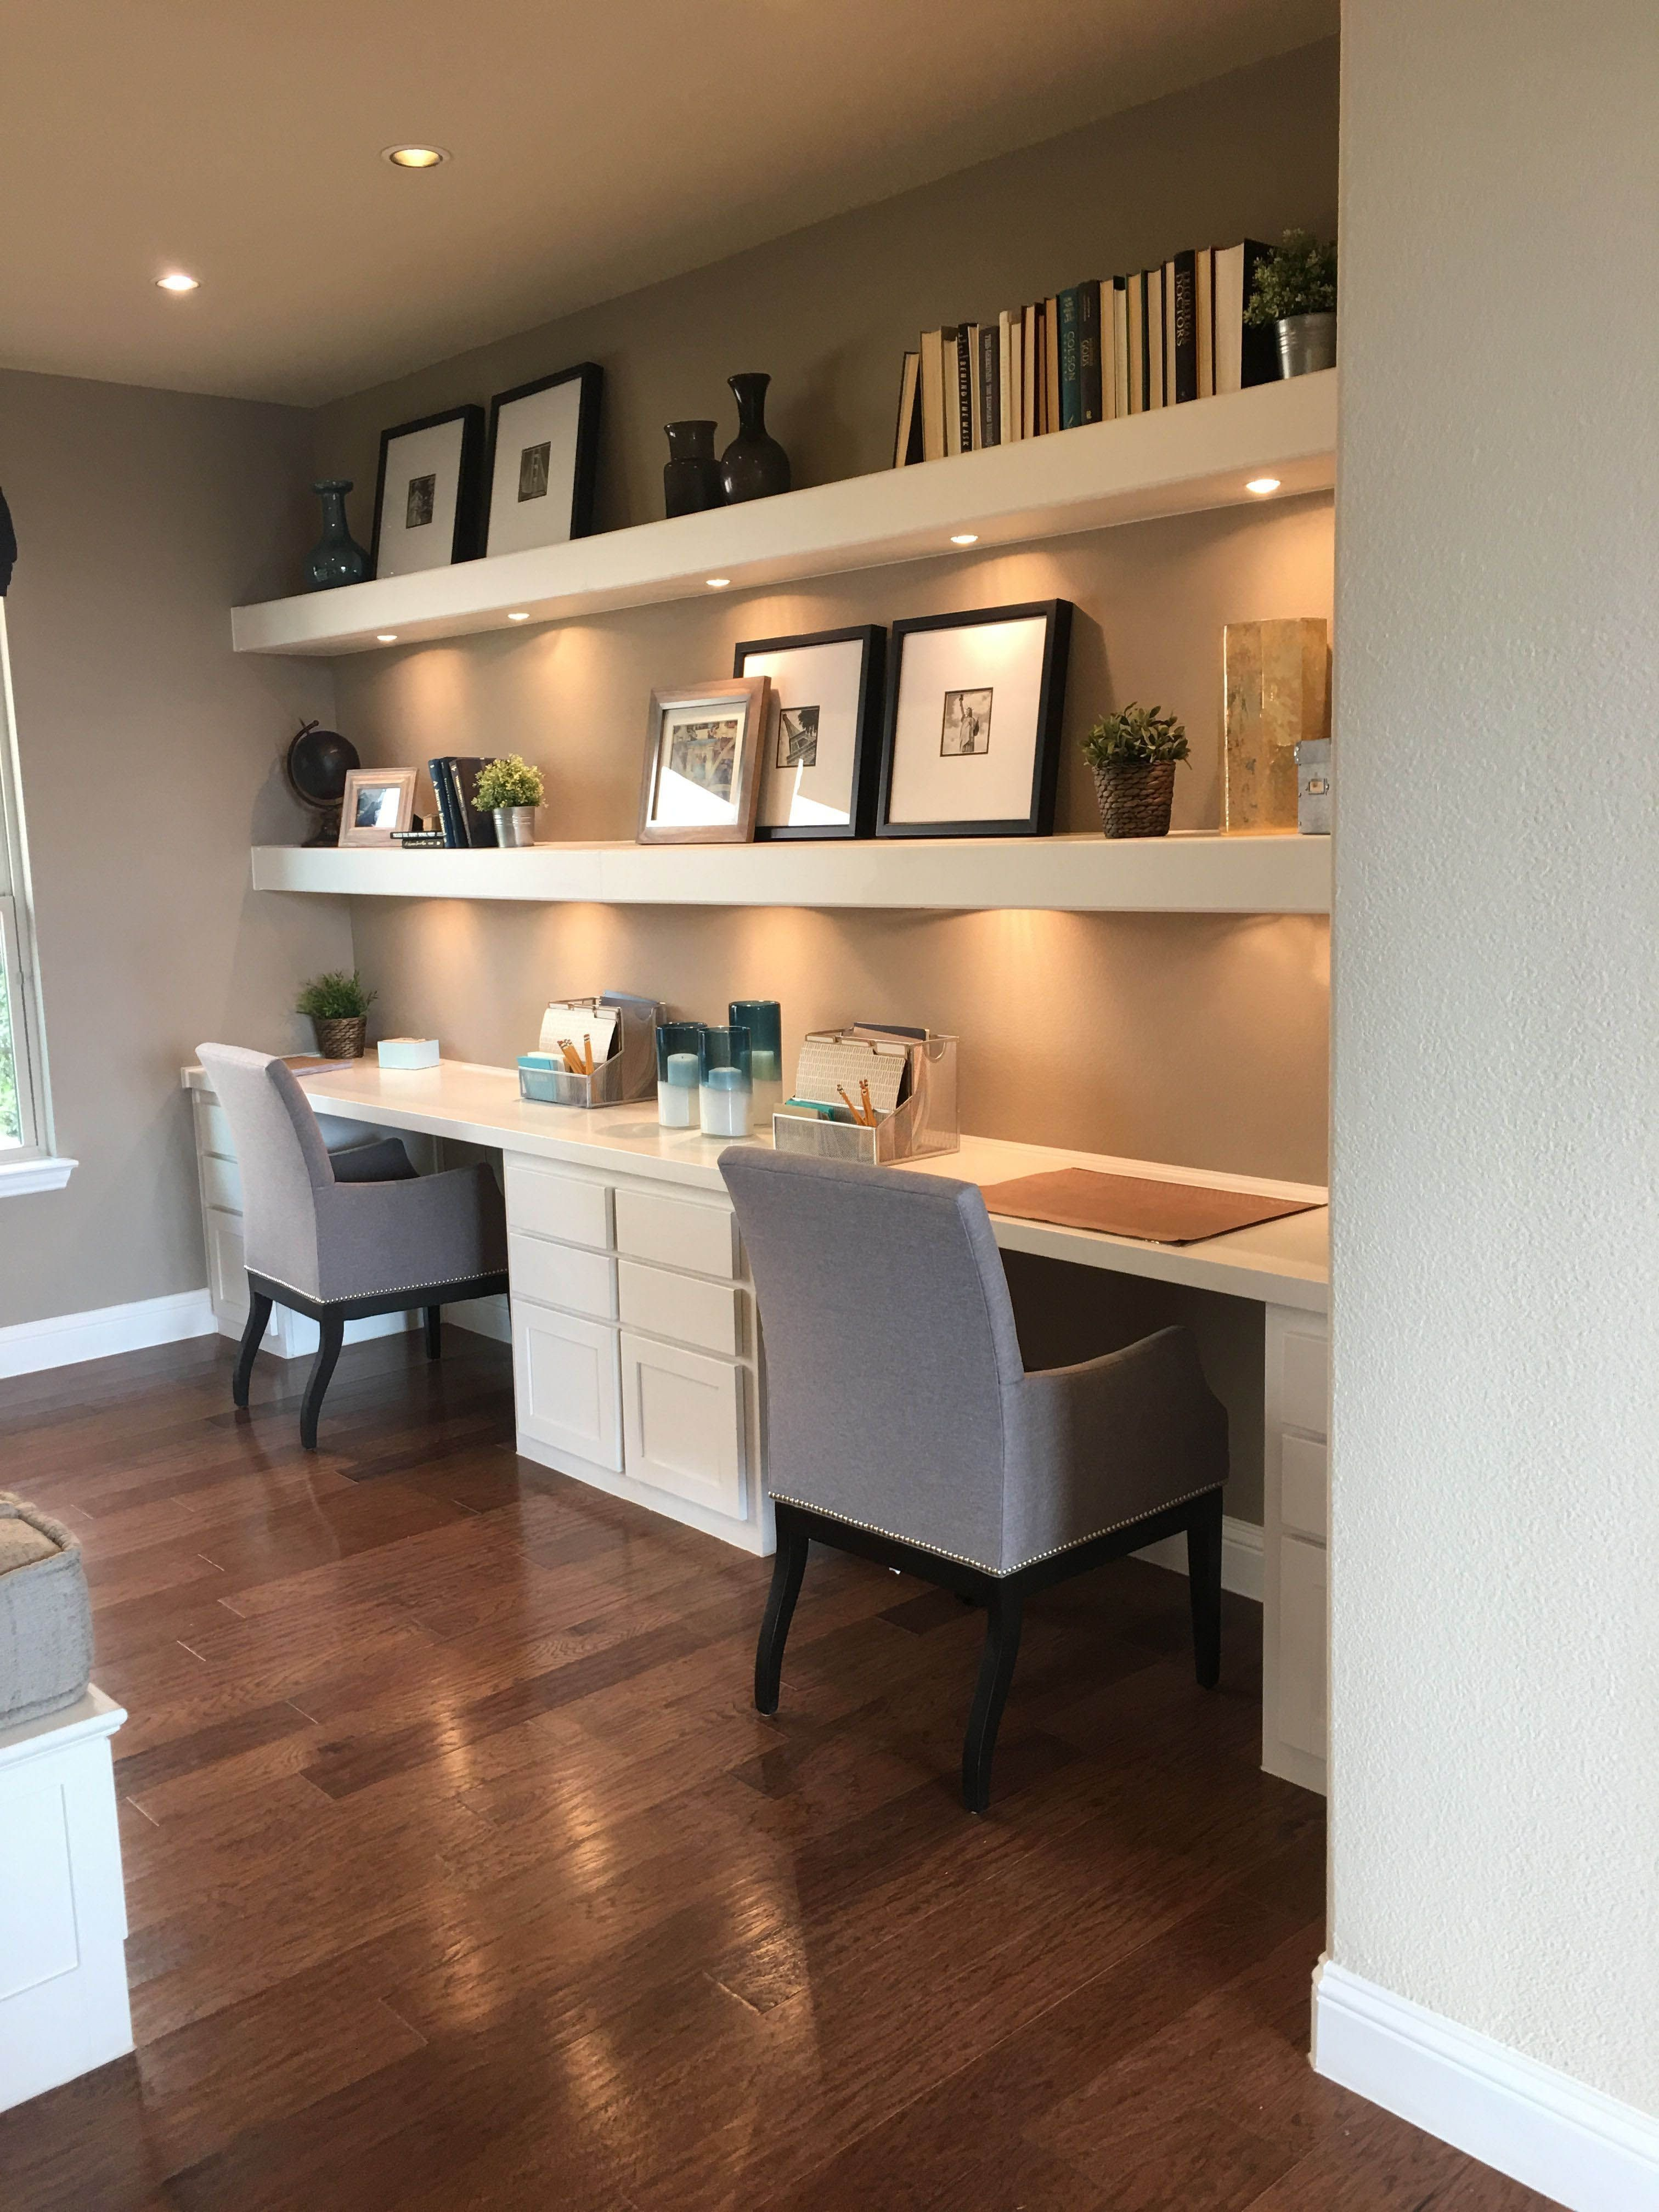 Astonishing Small Home Office Design Ideas To Try Today 41 In 2020 Home Office Desks Desk Design Home Office Design